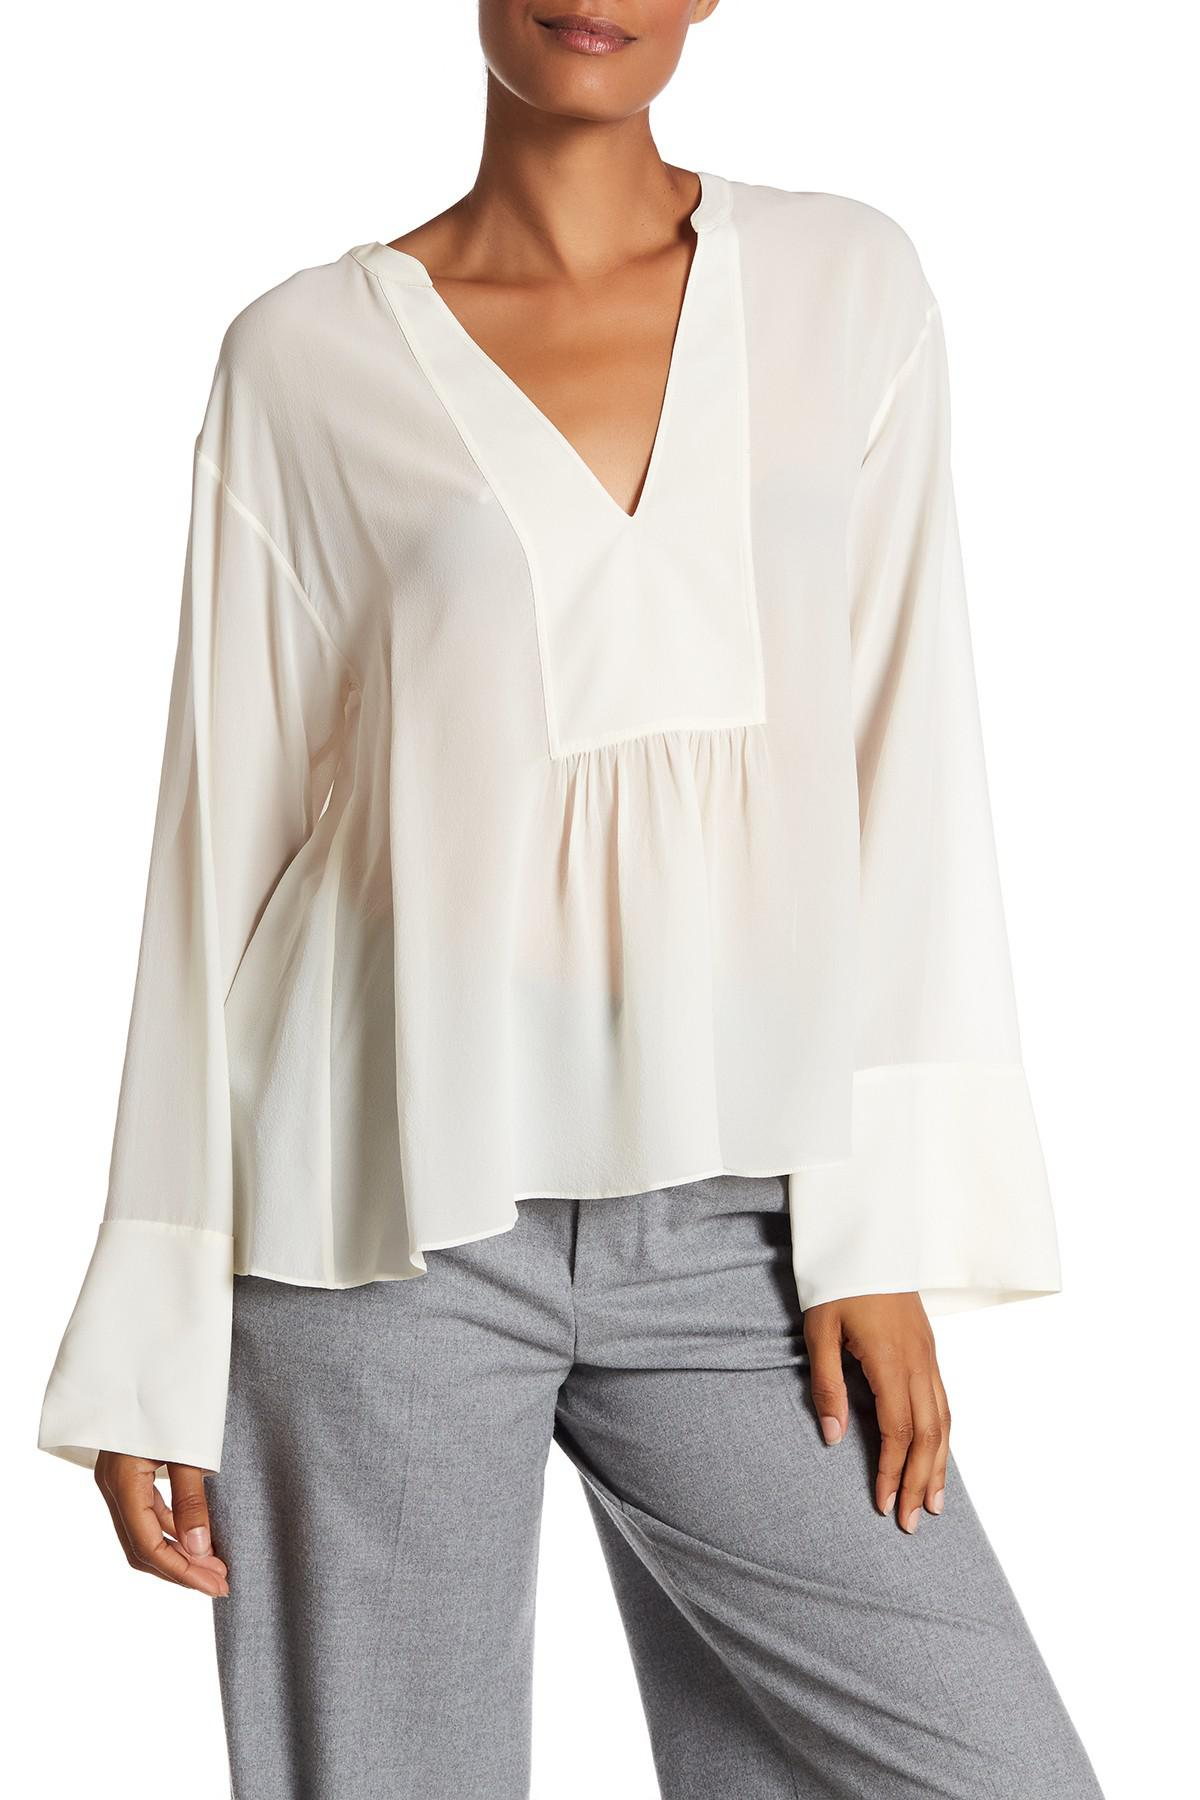 077d608620ded Lyst - Theory Matara Long Sleeve V-neck Silk Blouse in White